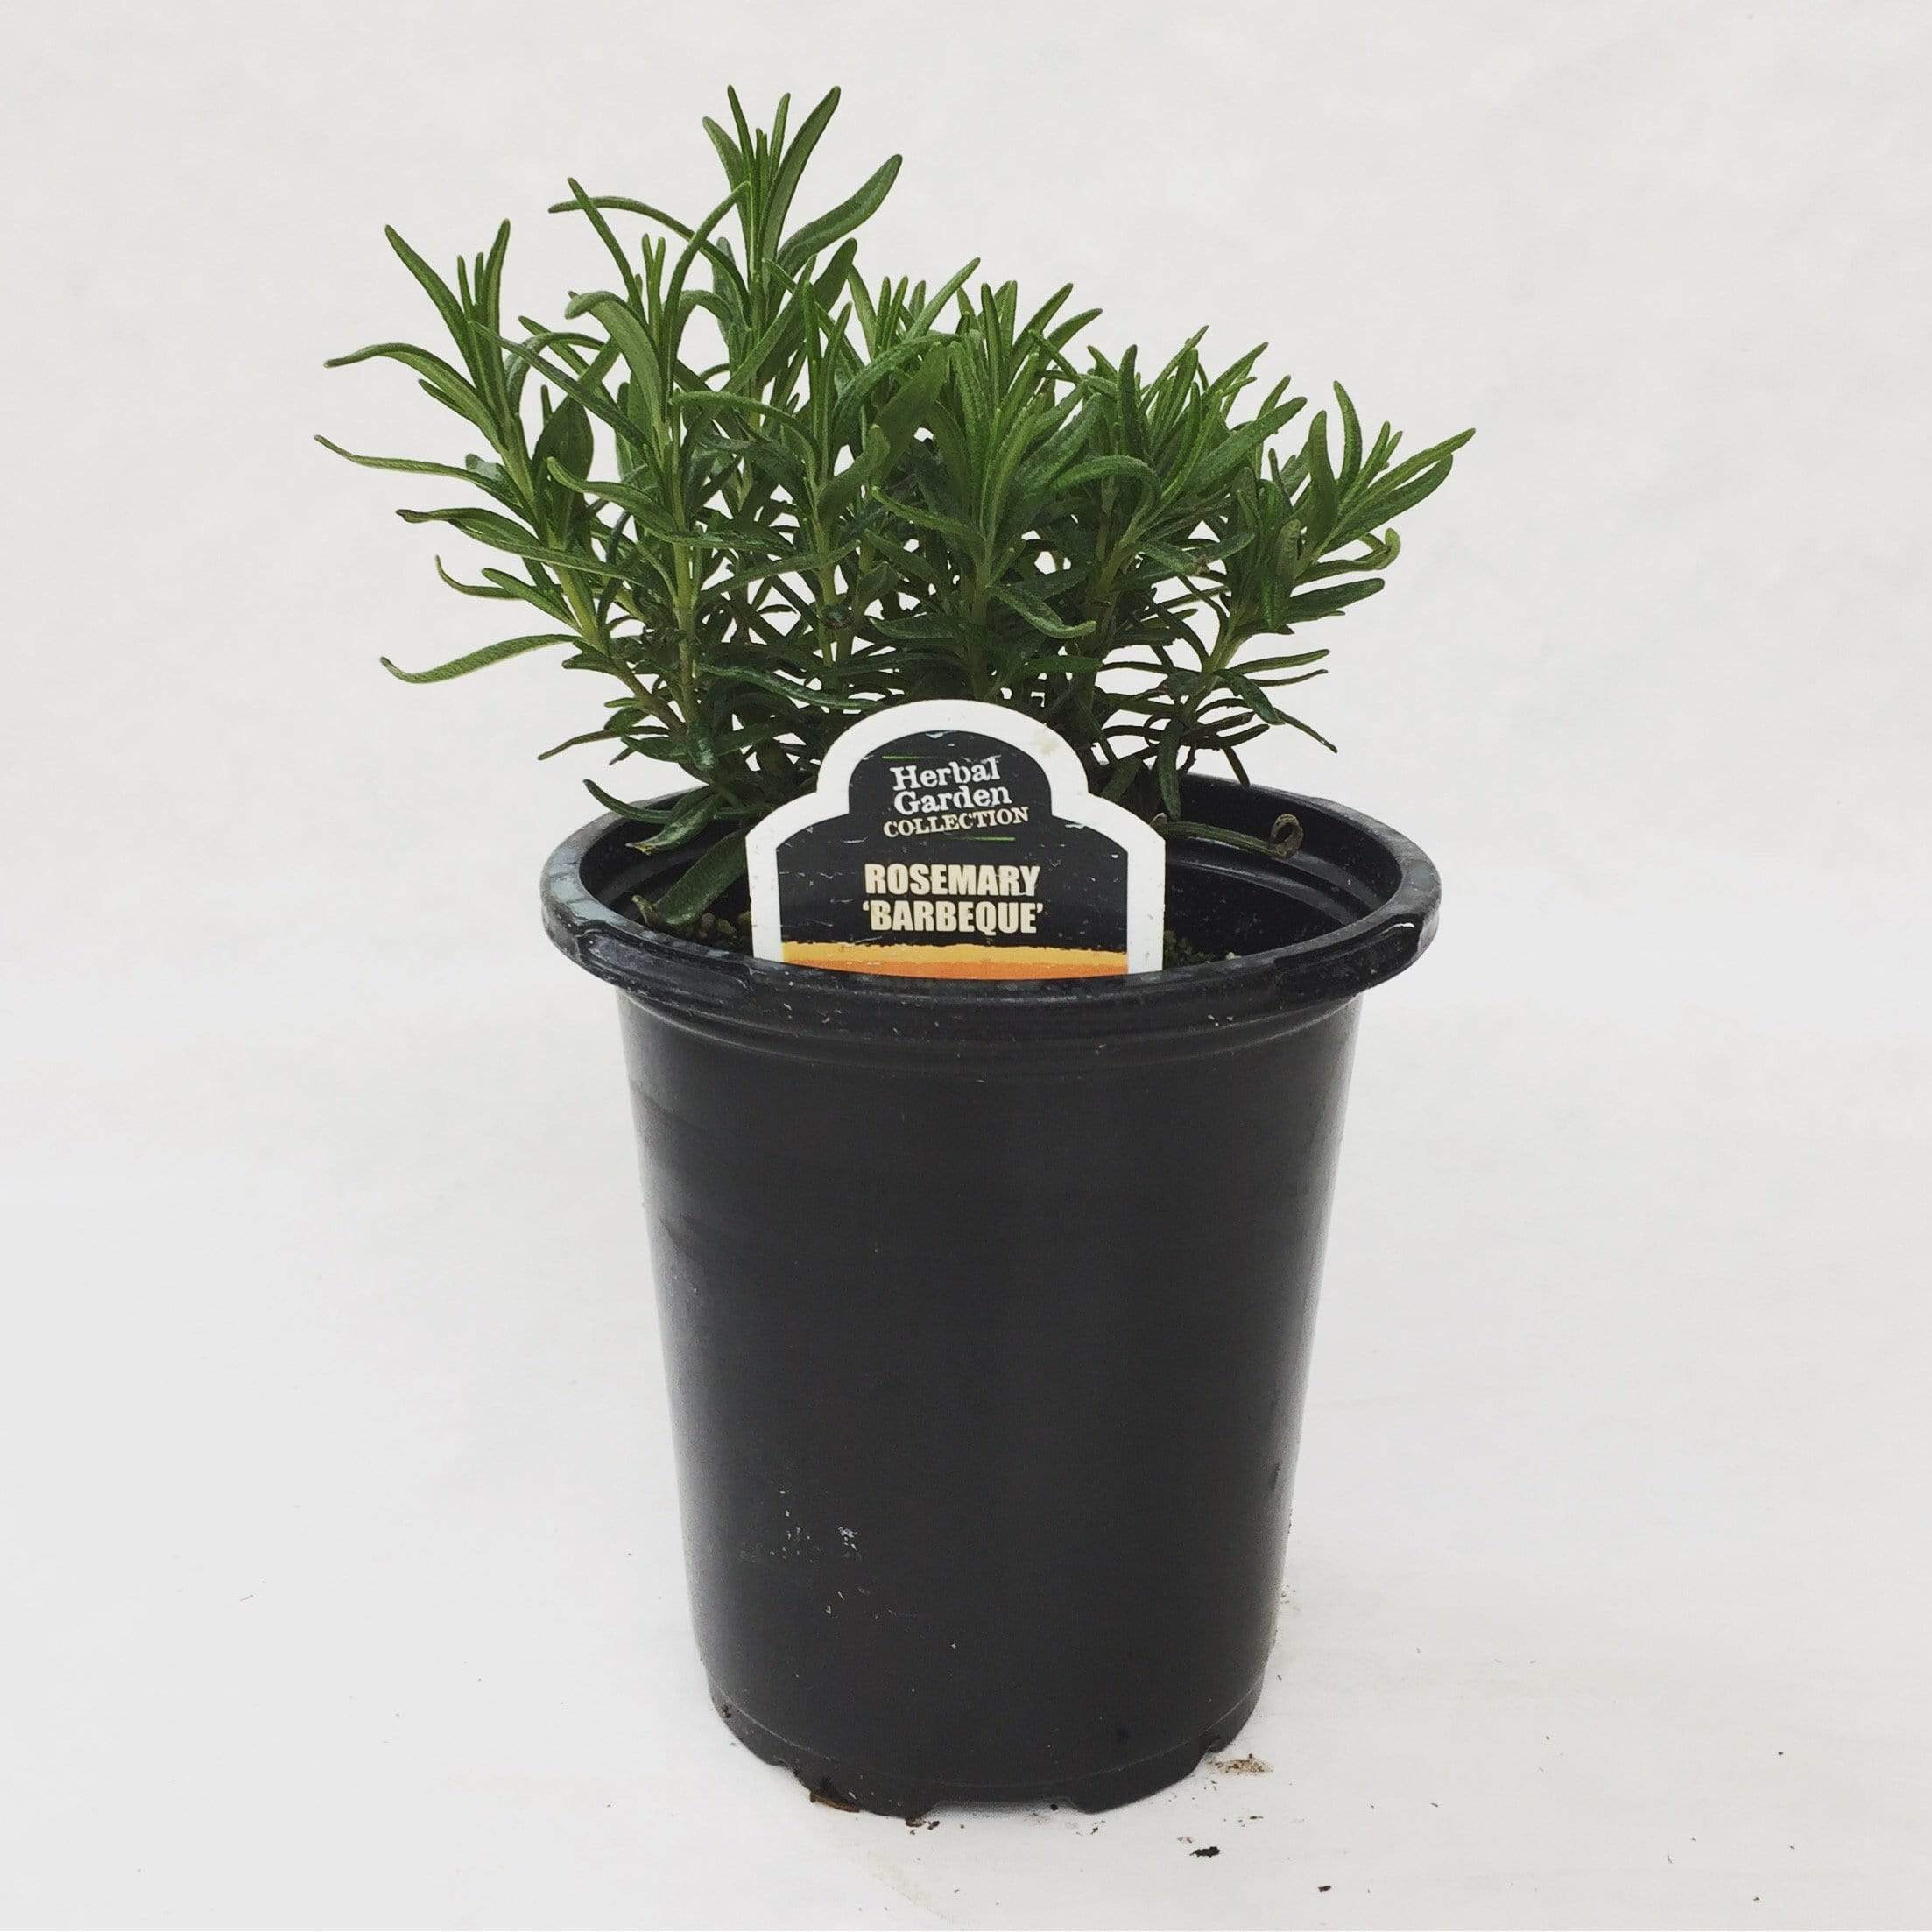 "The Plant Farm herb 4"" Plant Rosemary Barbeque Herb"